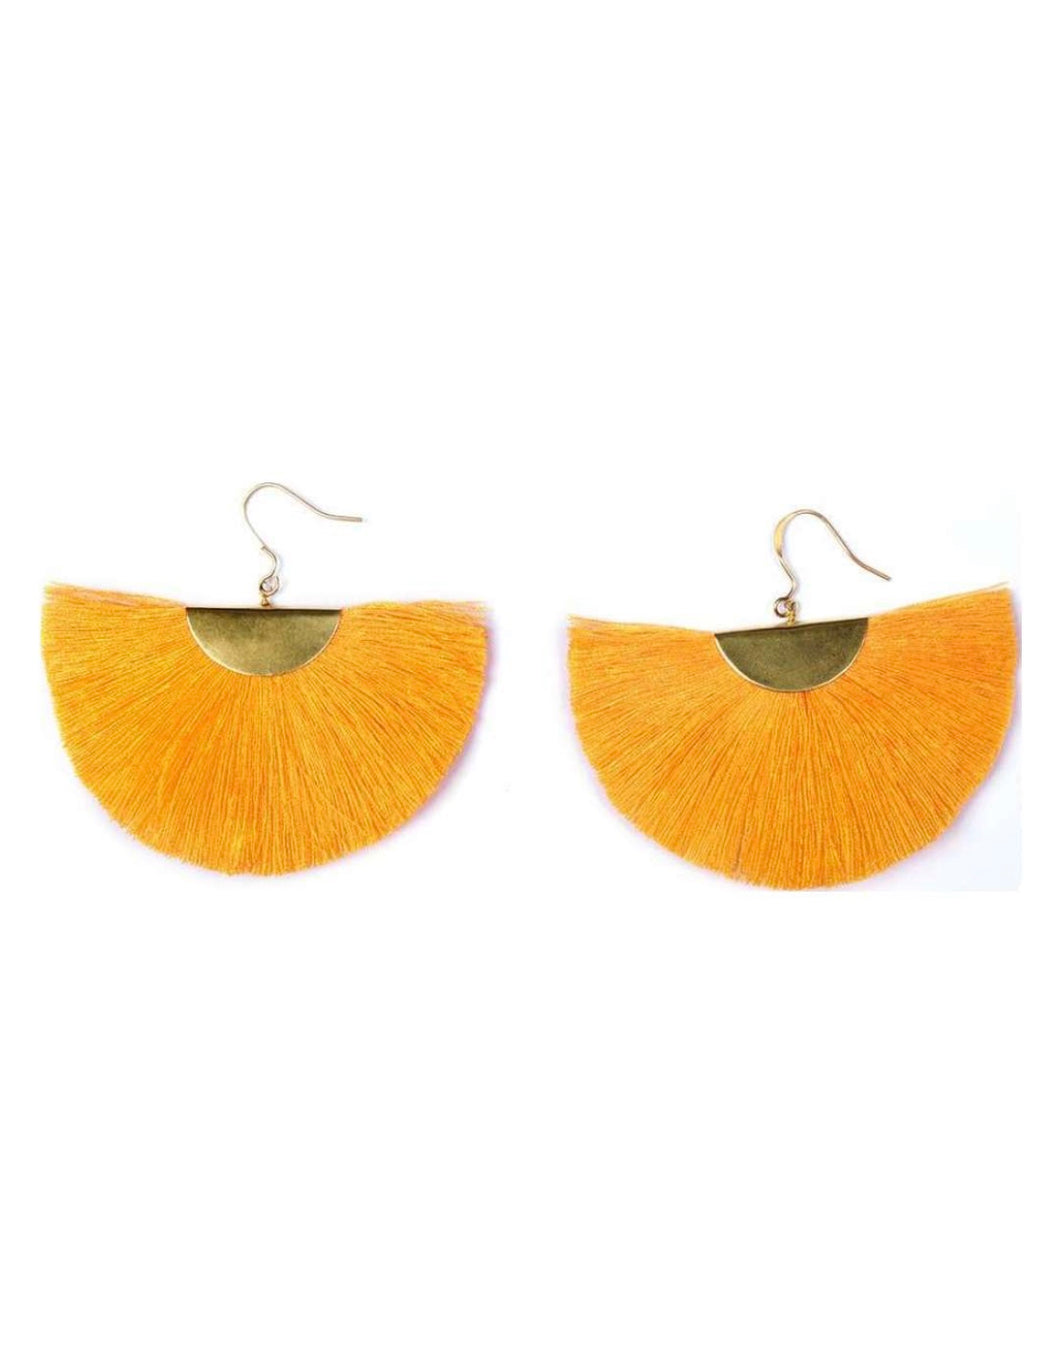 Color Me Beautiful -  Sunshine Yellow Fringe Earrings - Cause-ology